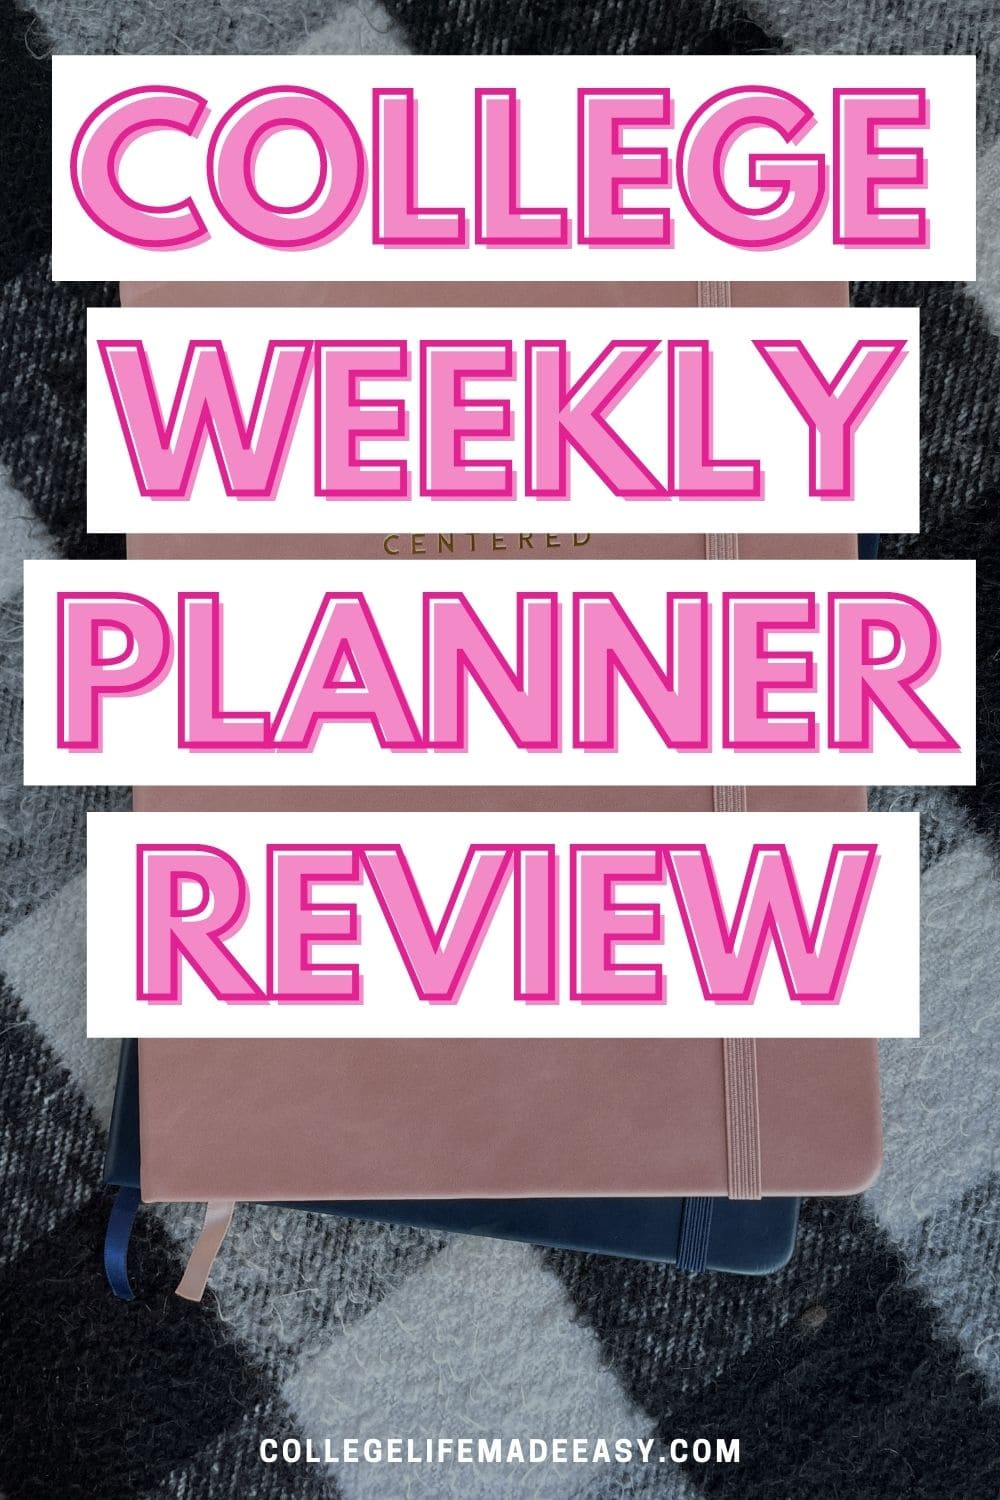 college weekly planner review infographic for saving to Pinterest